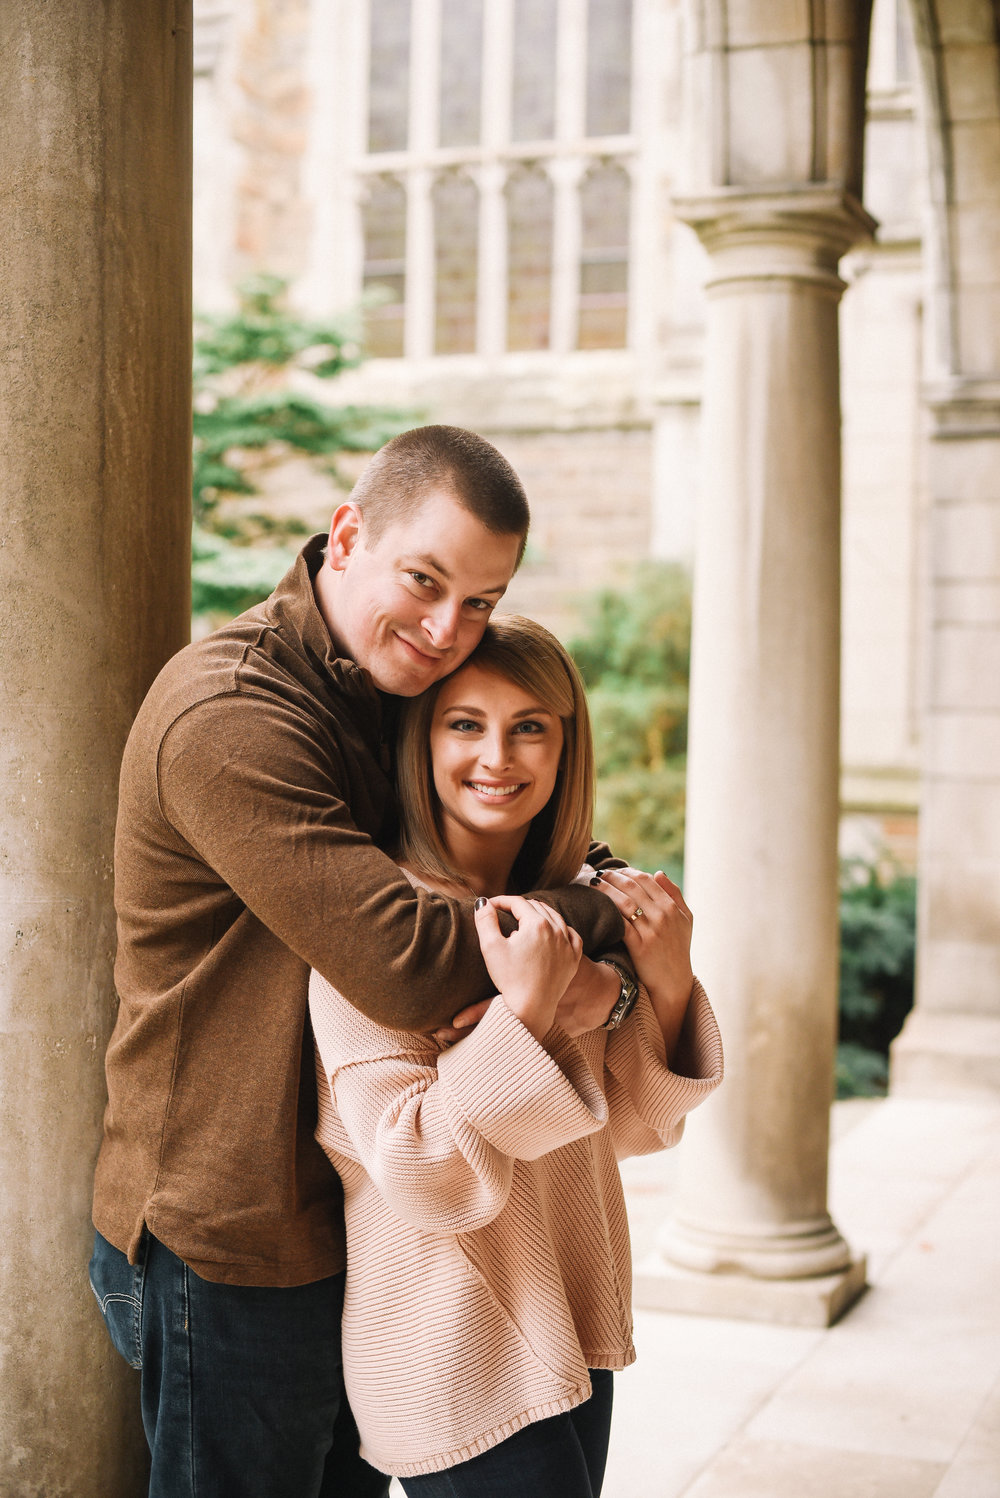 Law_Quad_Ann_Arbor_Engagement_Photos-8.jpg